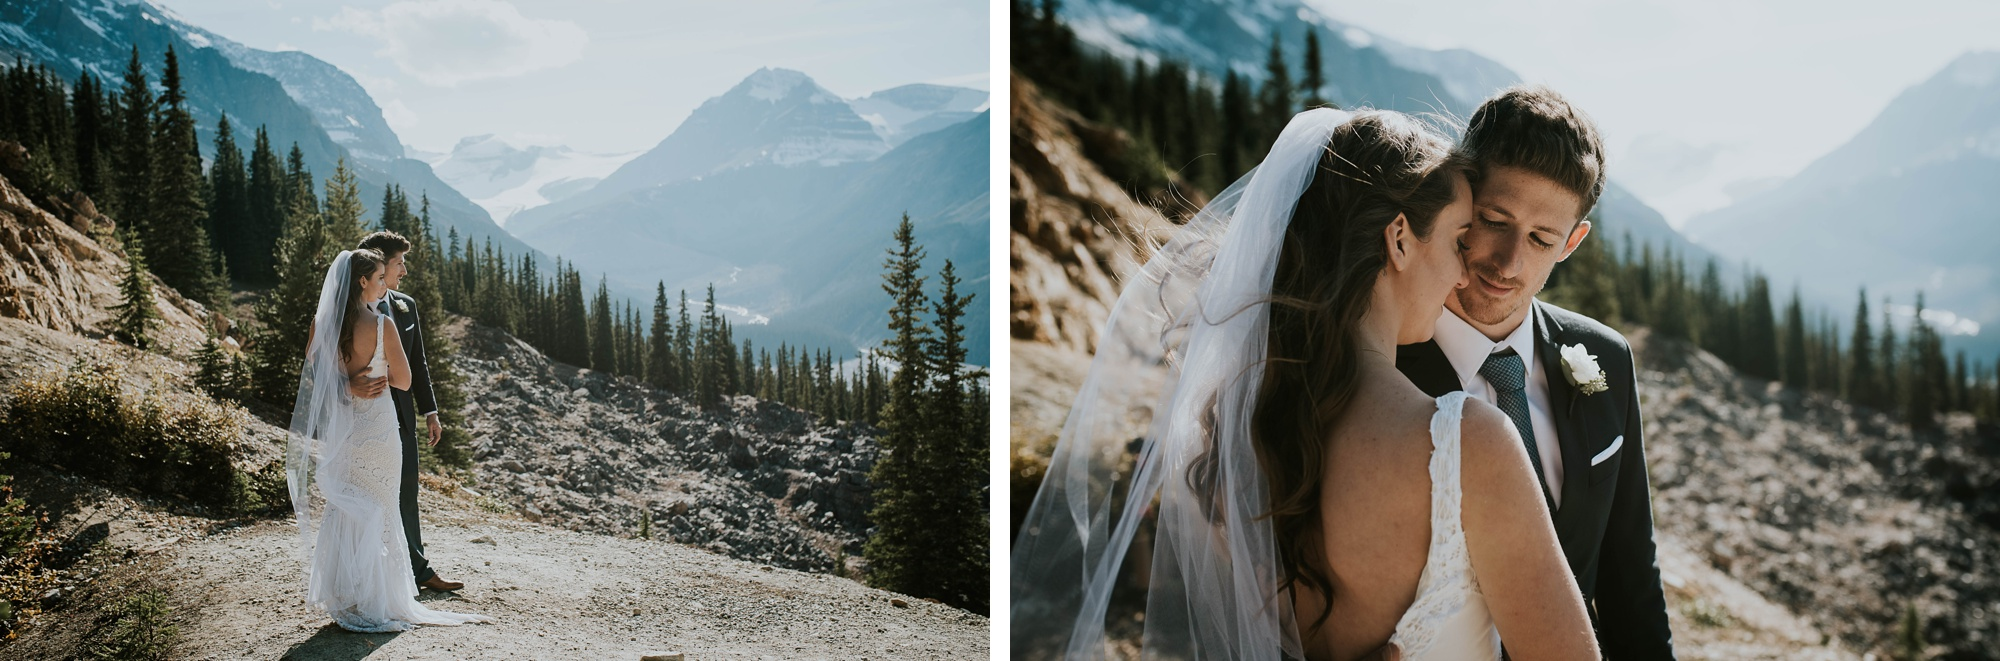 bride and groom standing out facing Peyto Lake during intimate Peyto Lake elopement